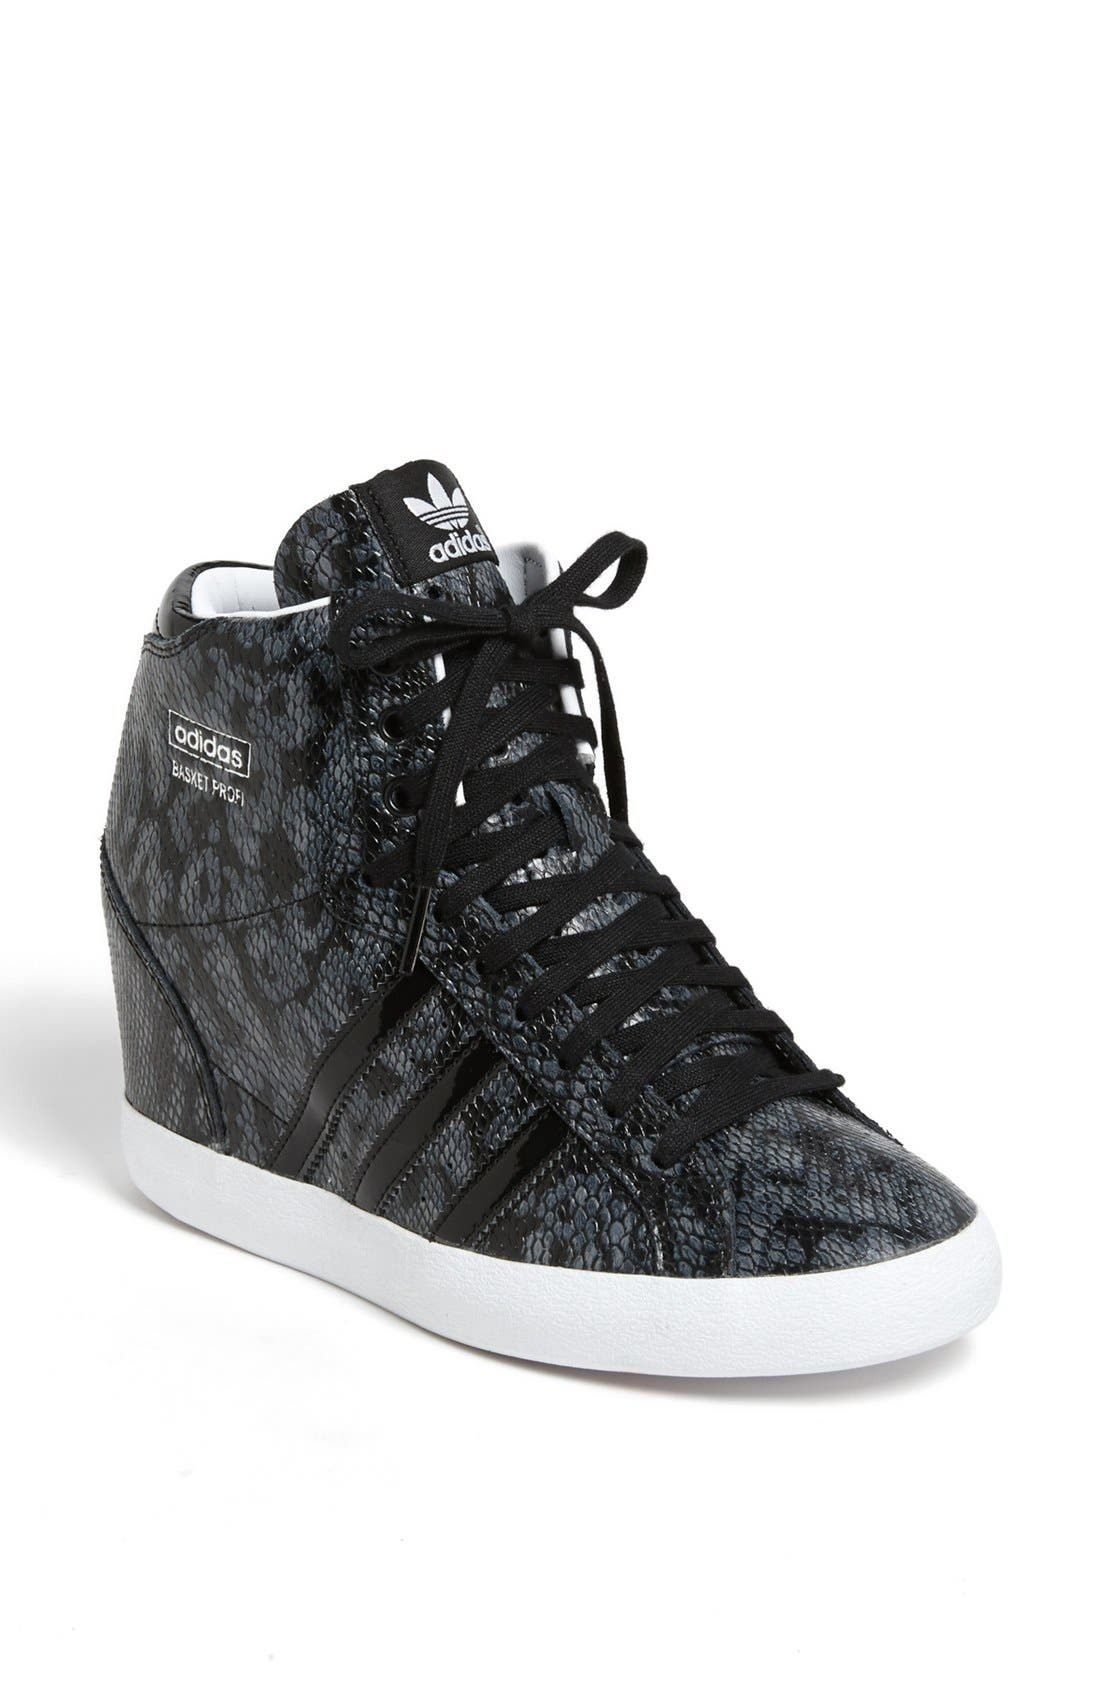 'Basket Profi' Hidden Wedge Sneaker,                         Main,                         color, Black/ White